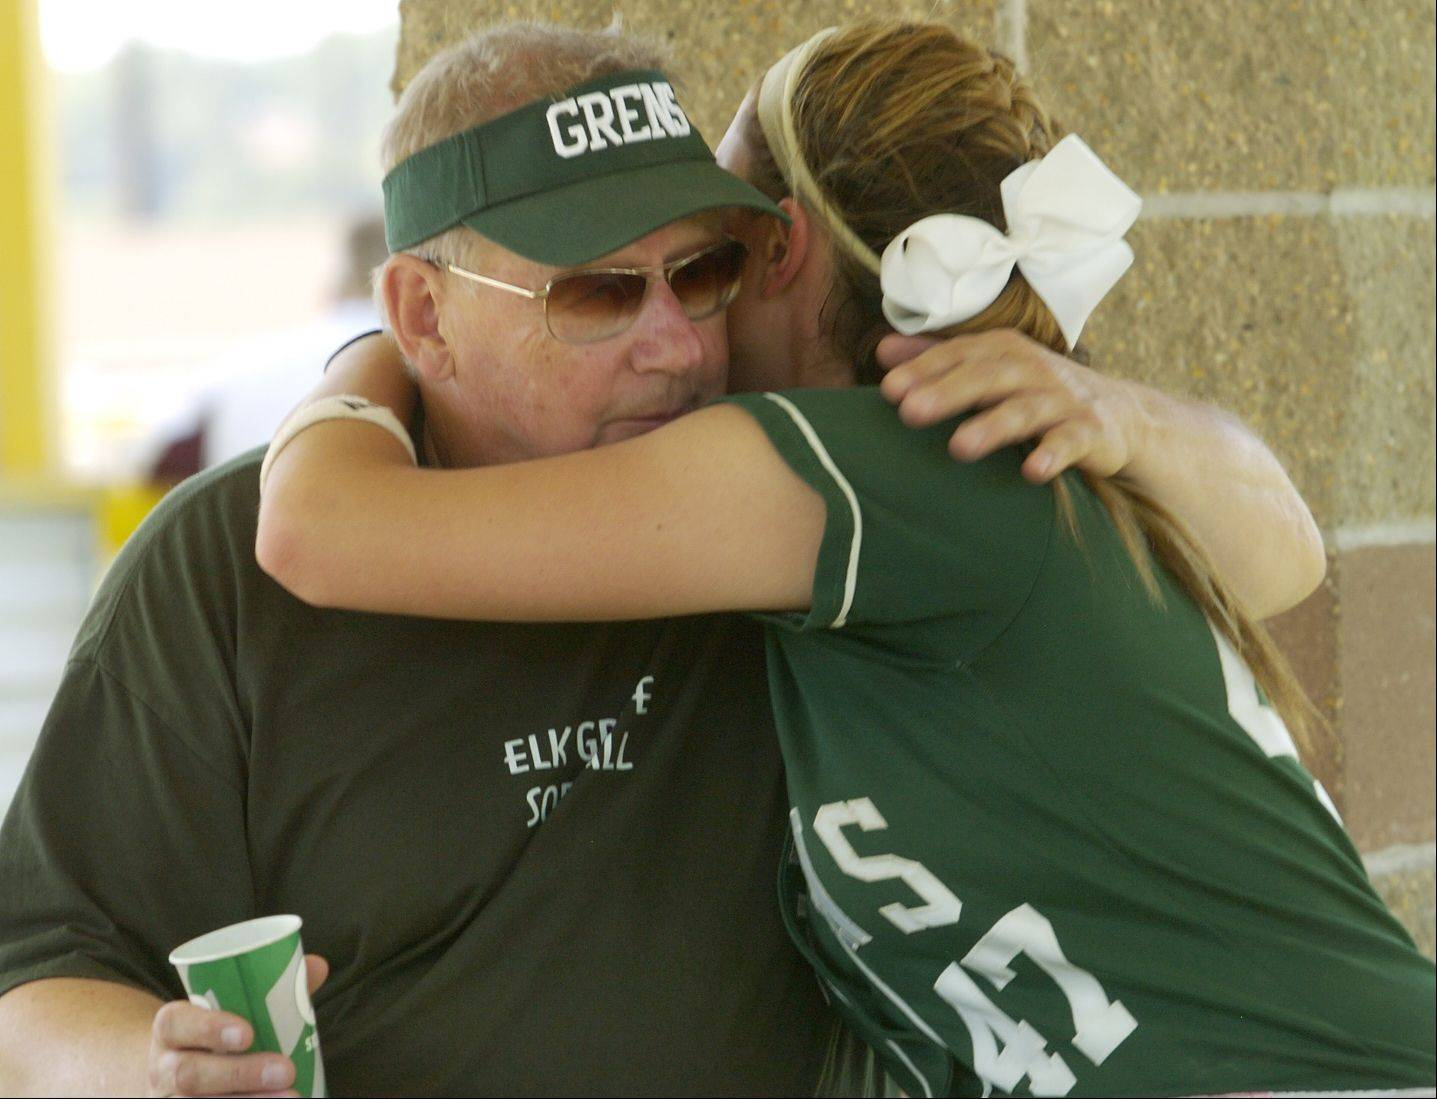 Dani Goranson is consoled by her coach, Ken Grams, after Elk Grove's loss to Marist in the Class 4A softball state semifinals.